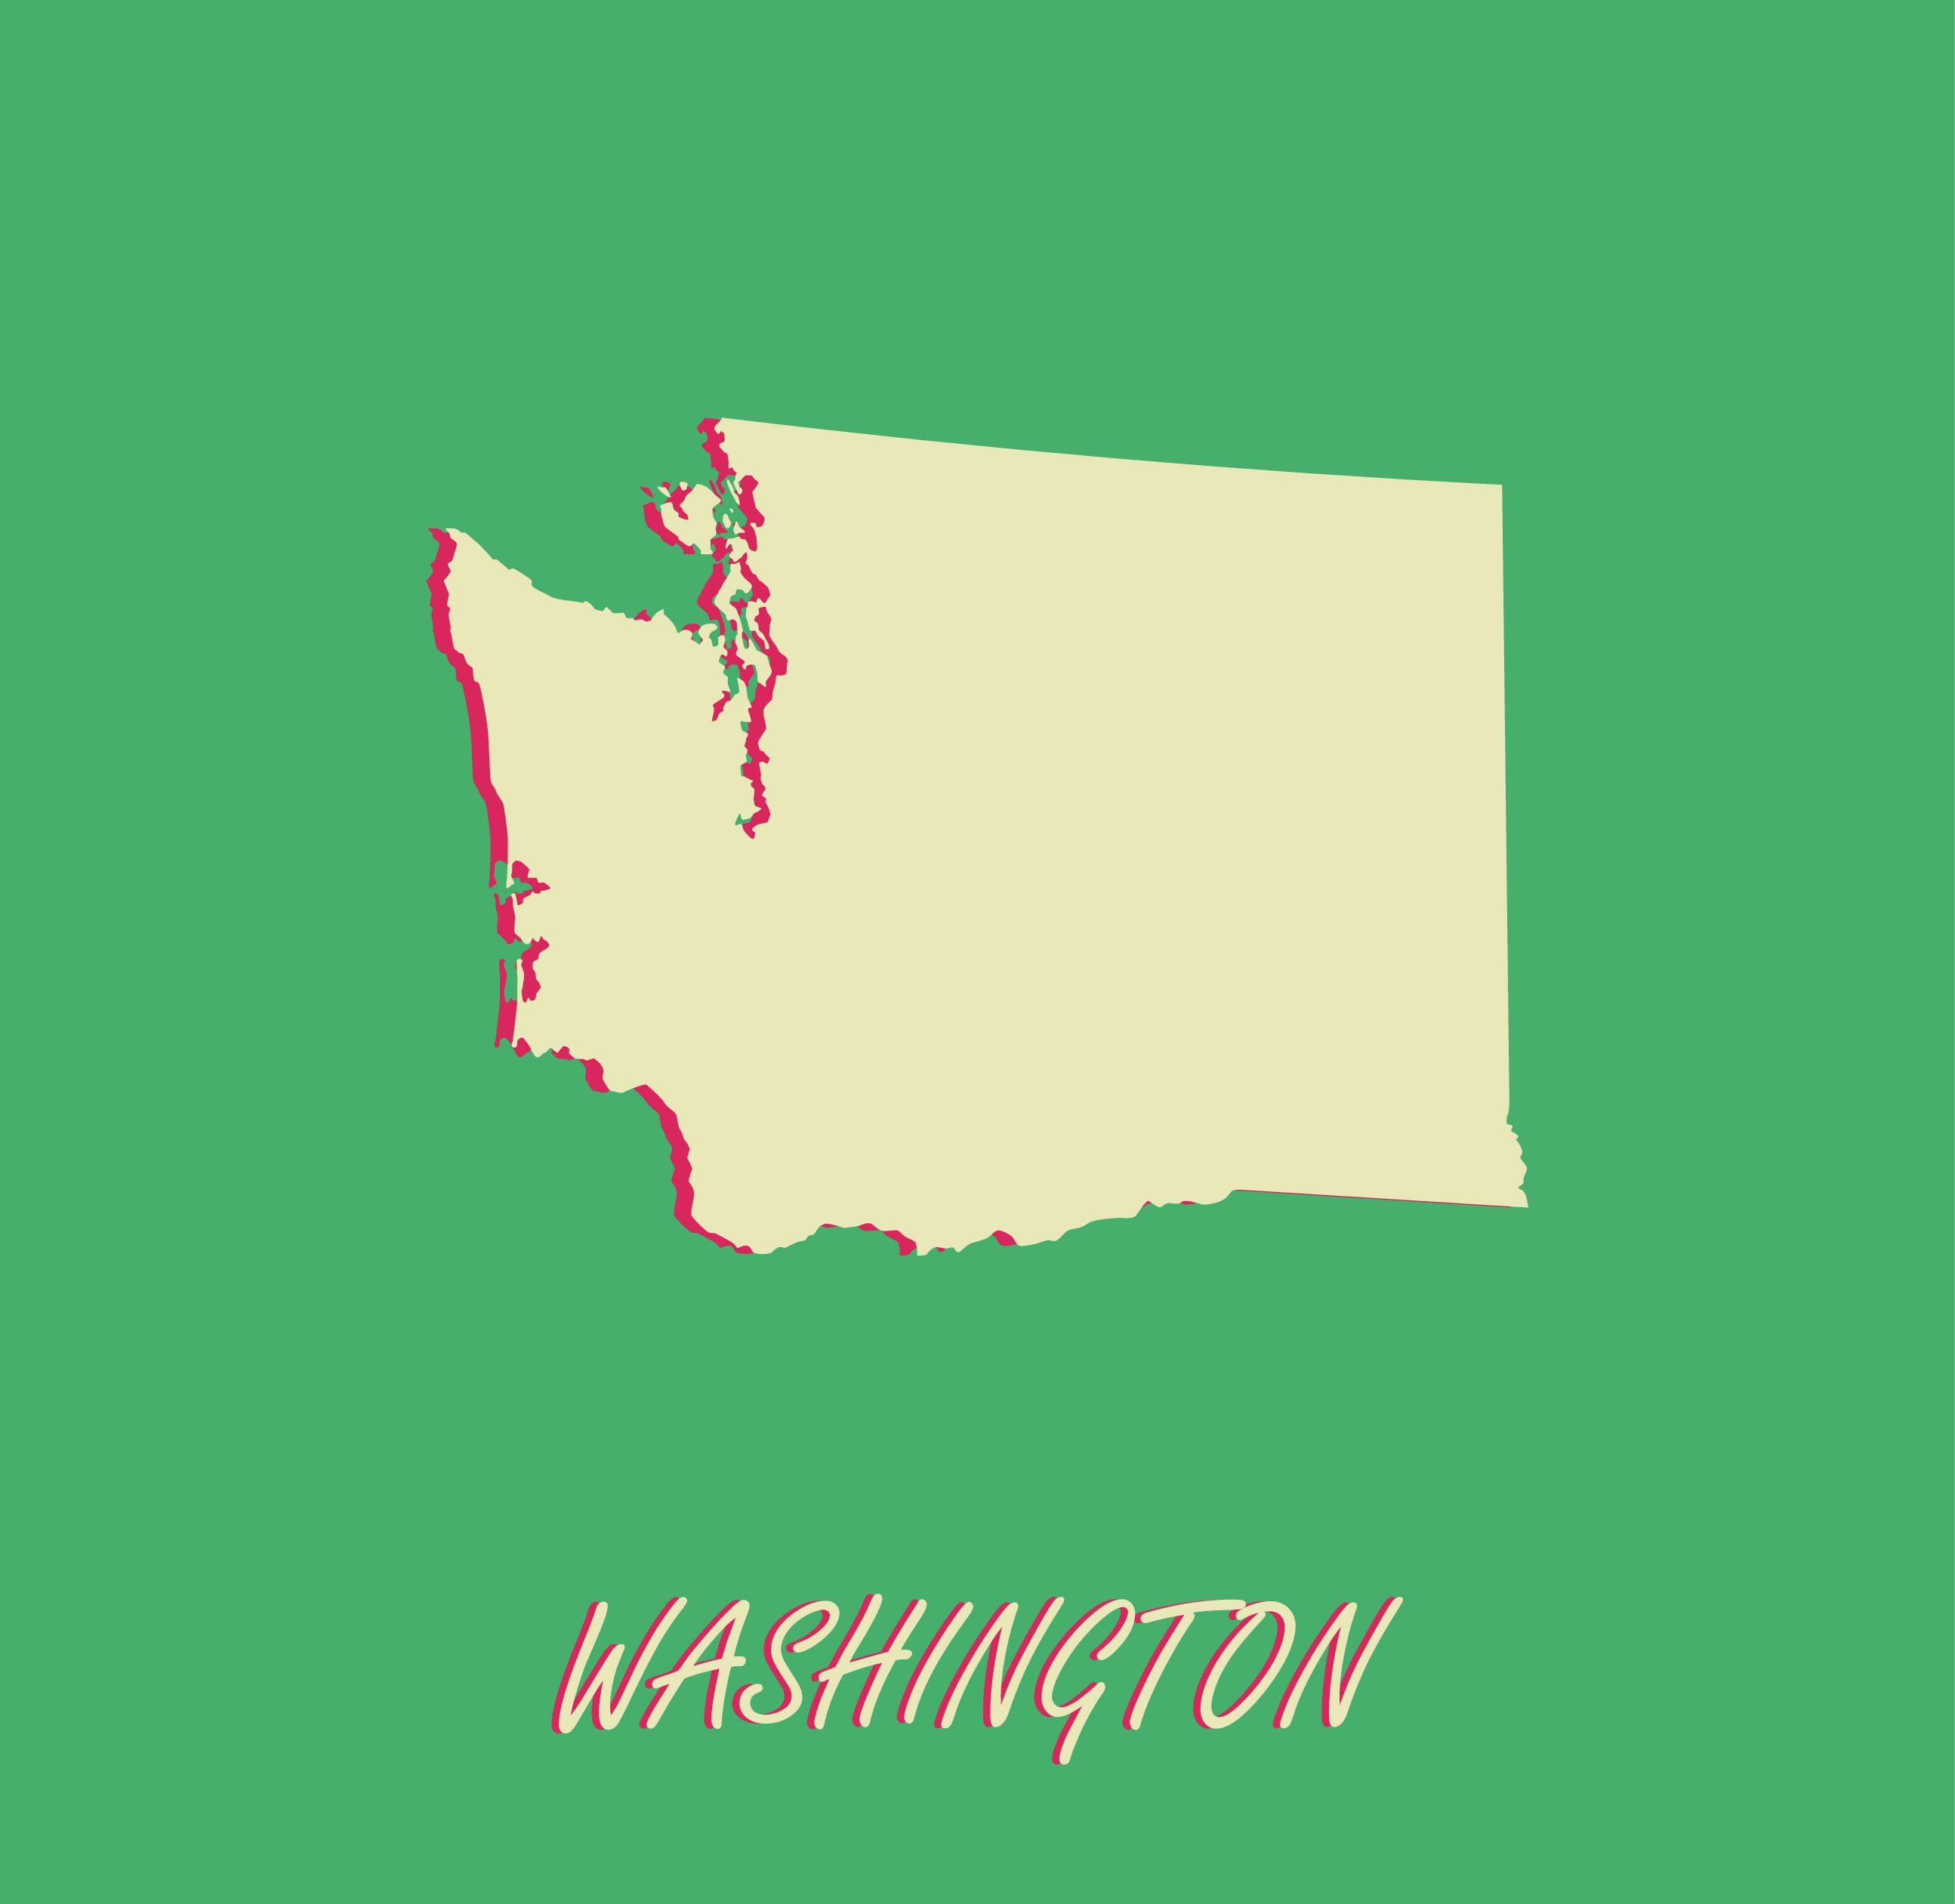 Nanny tax and payroll requirements for Washington families